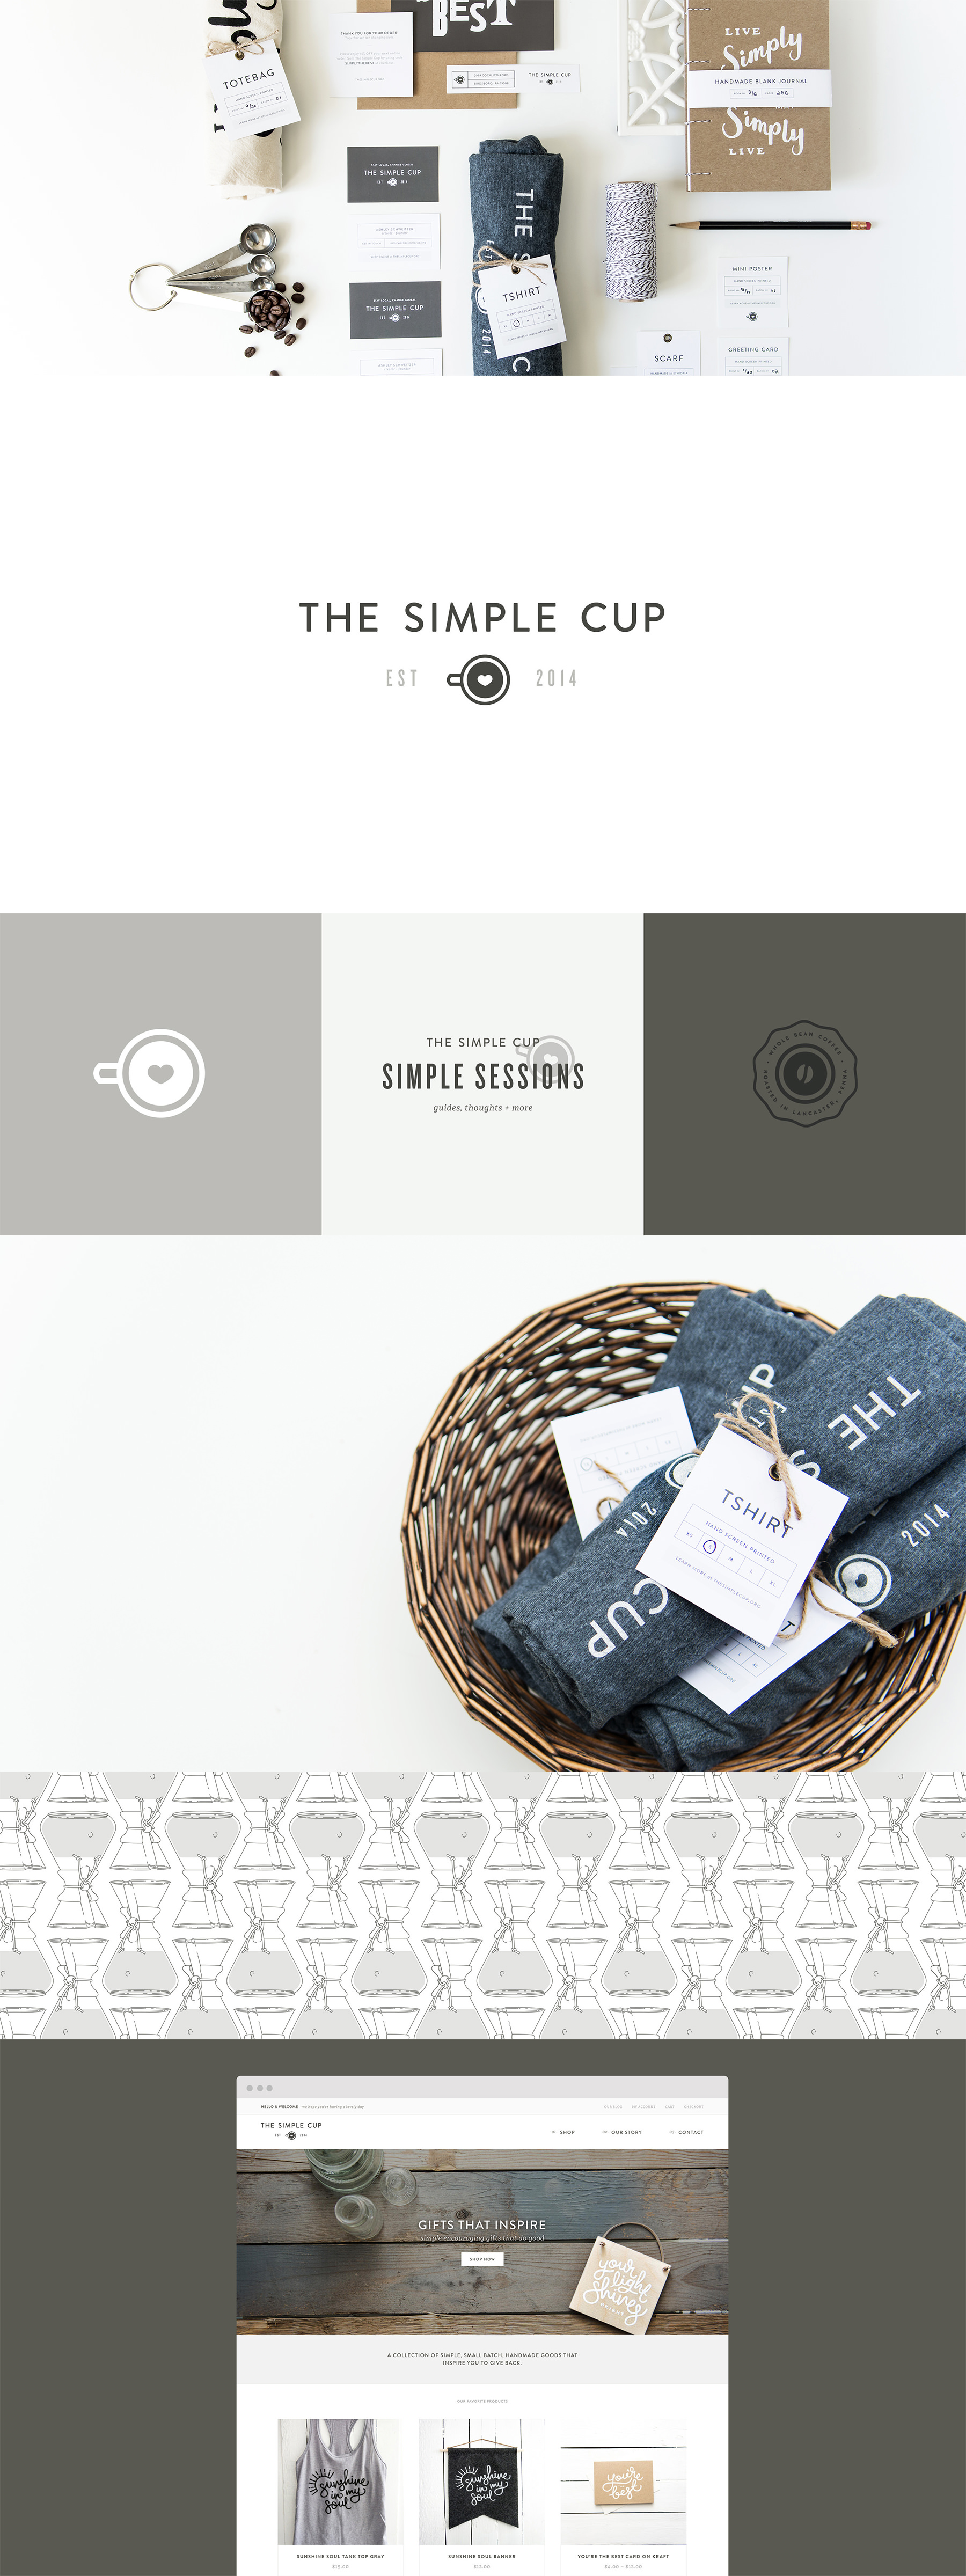 The Simple Cup branding by The Curio Collective